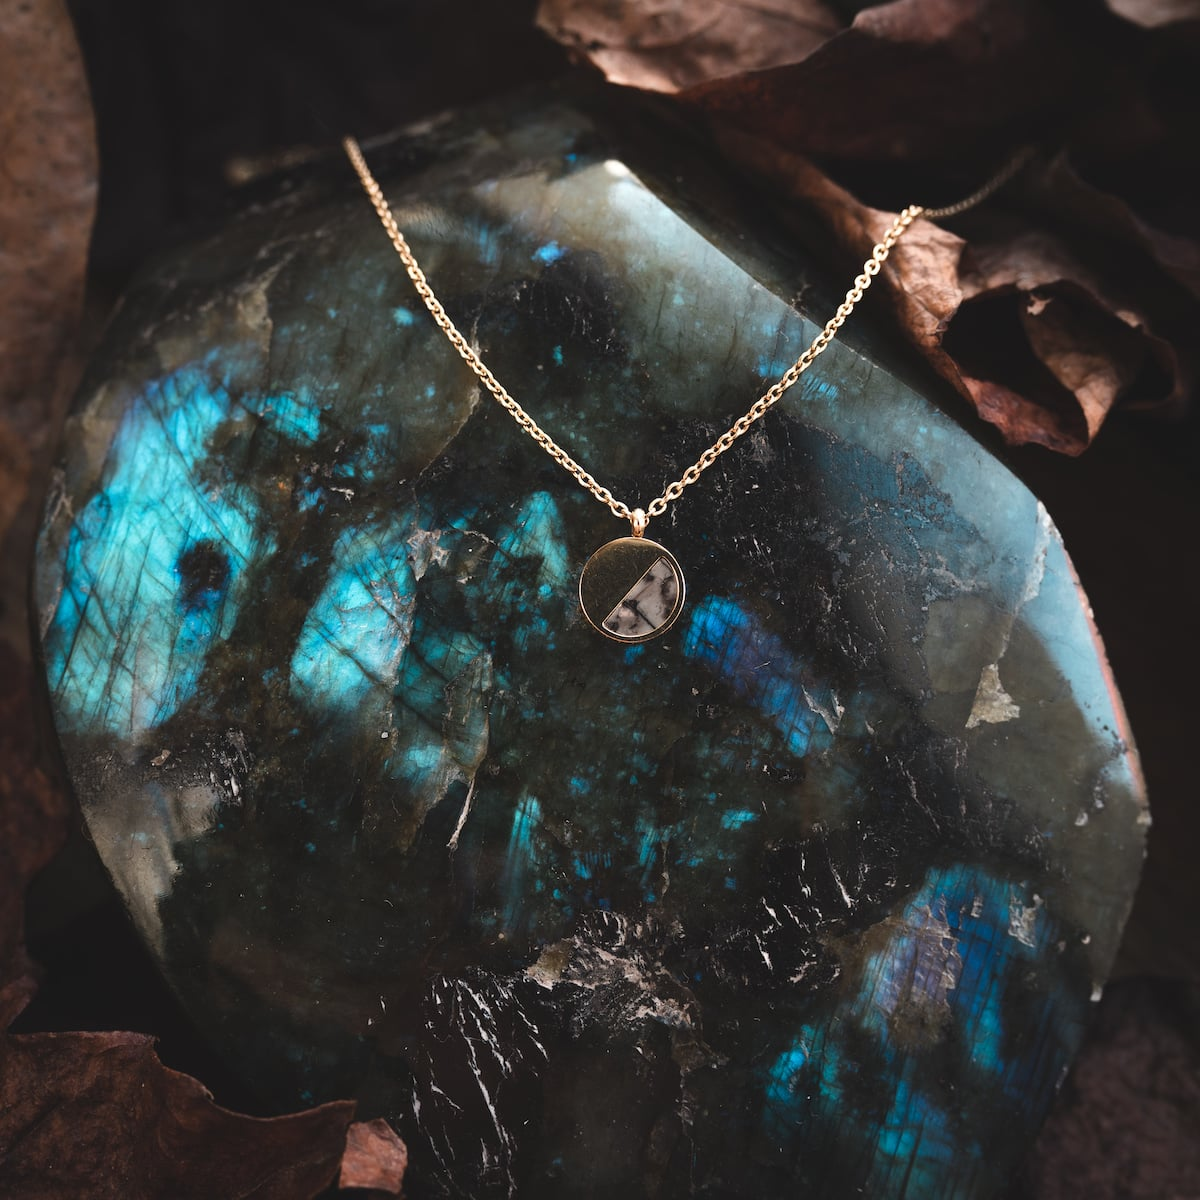 Muse Necklace $75